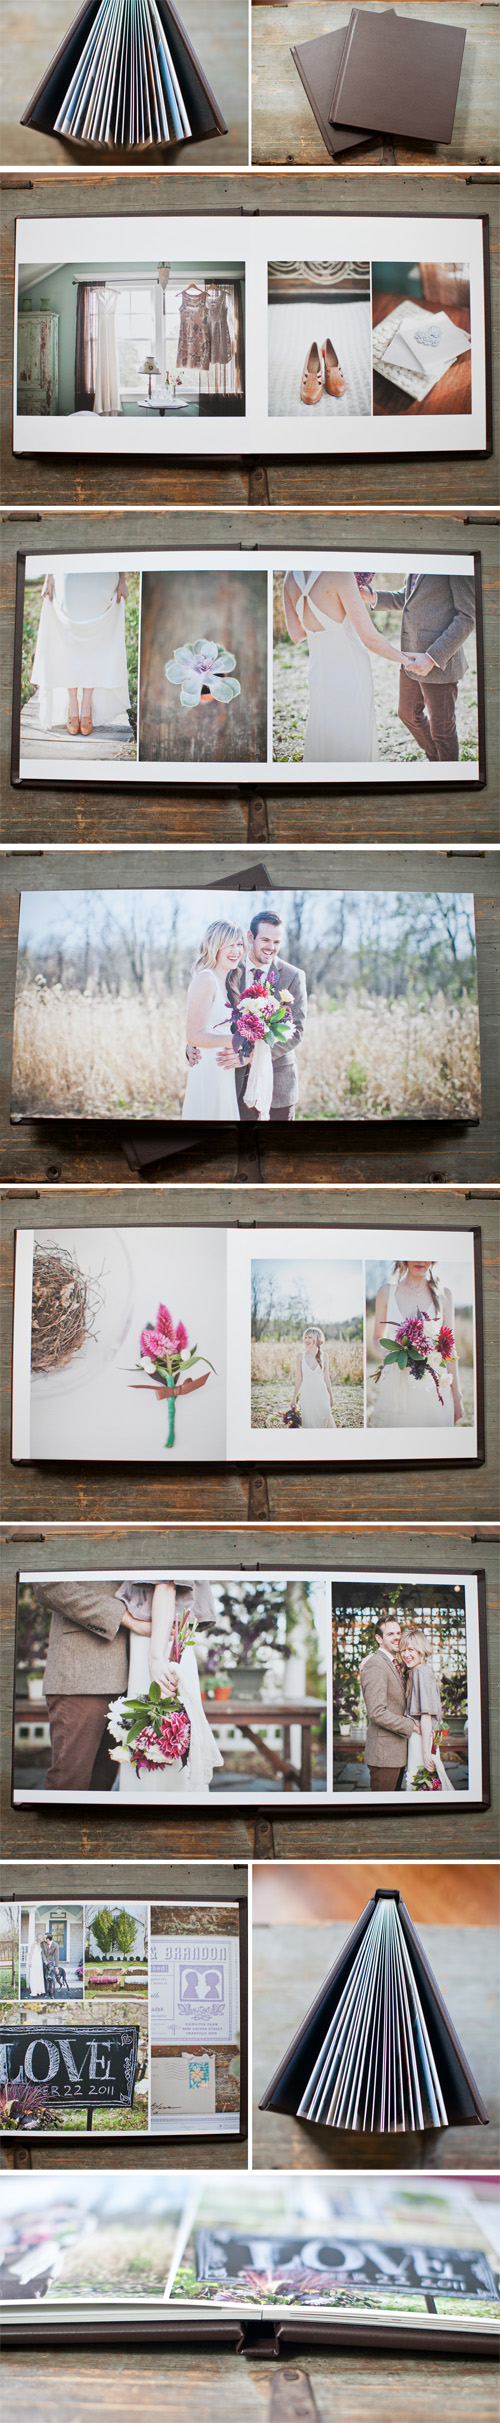 Lily Glass Photography Wedding Albums_blog